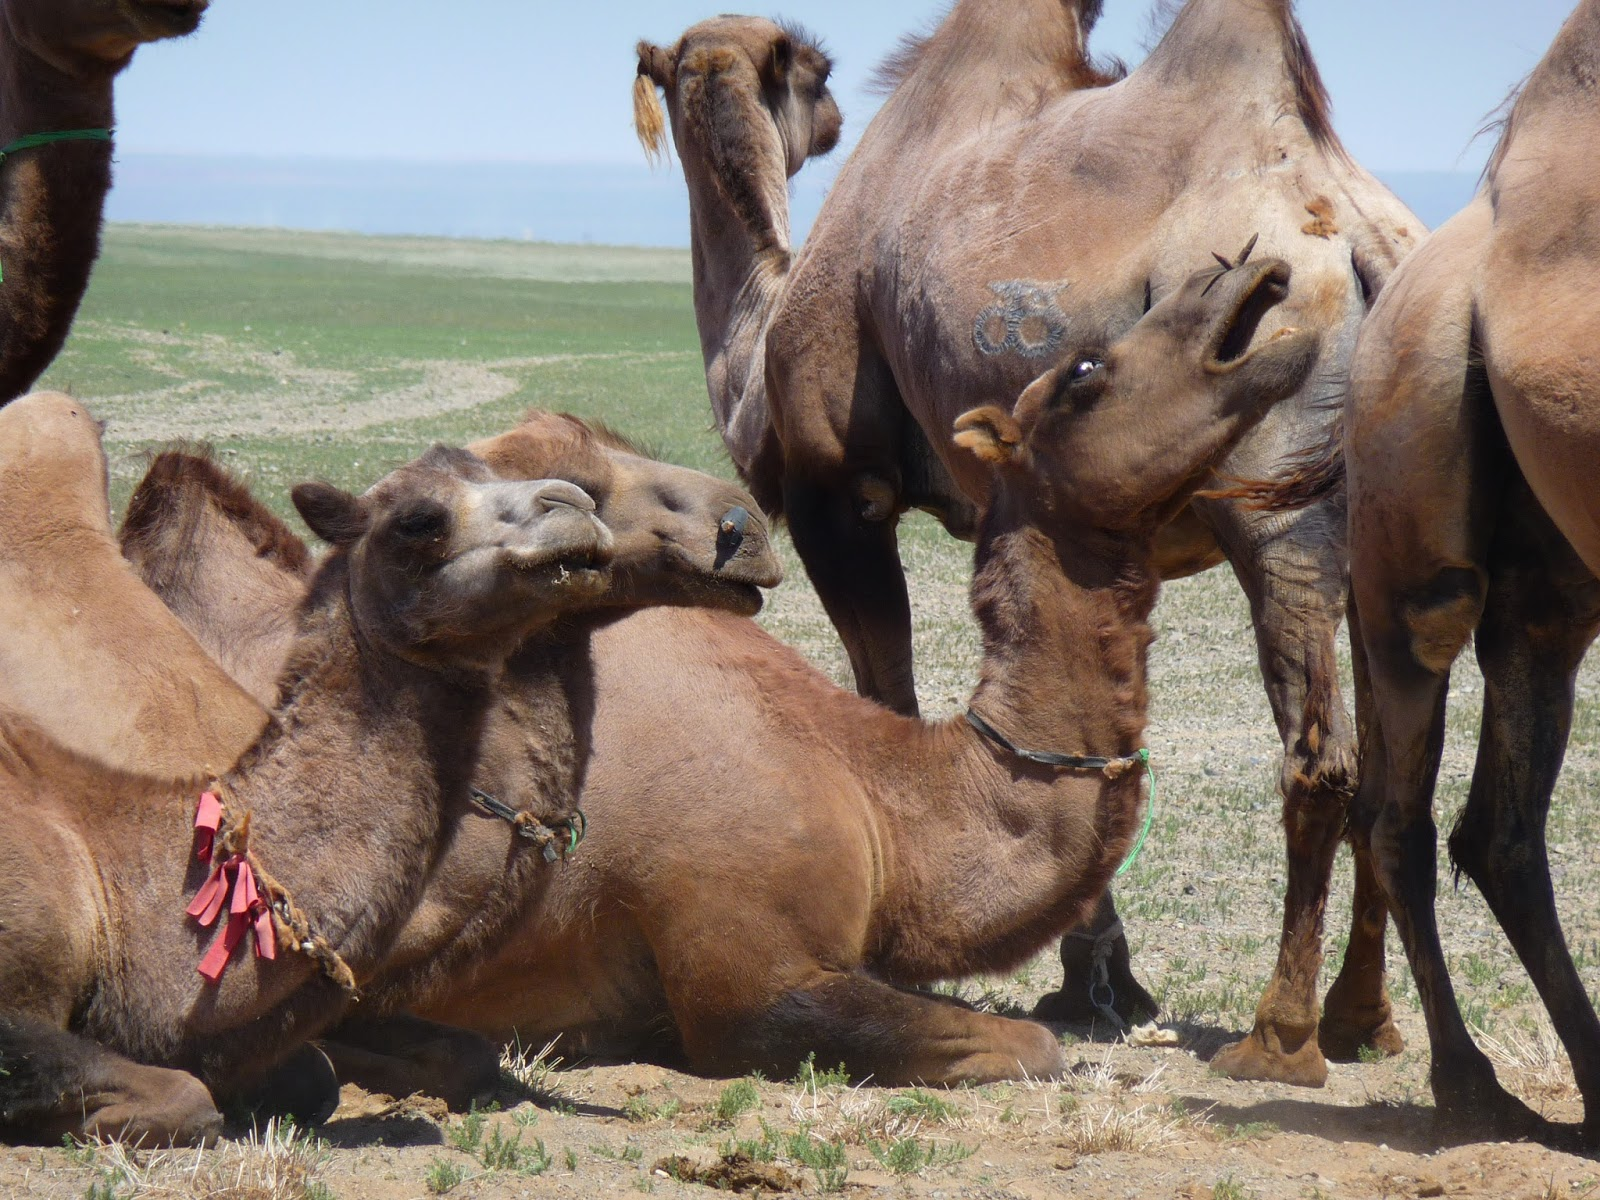 Camels yawning is the stuff of nightmares.